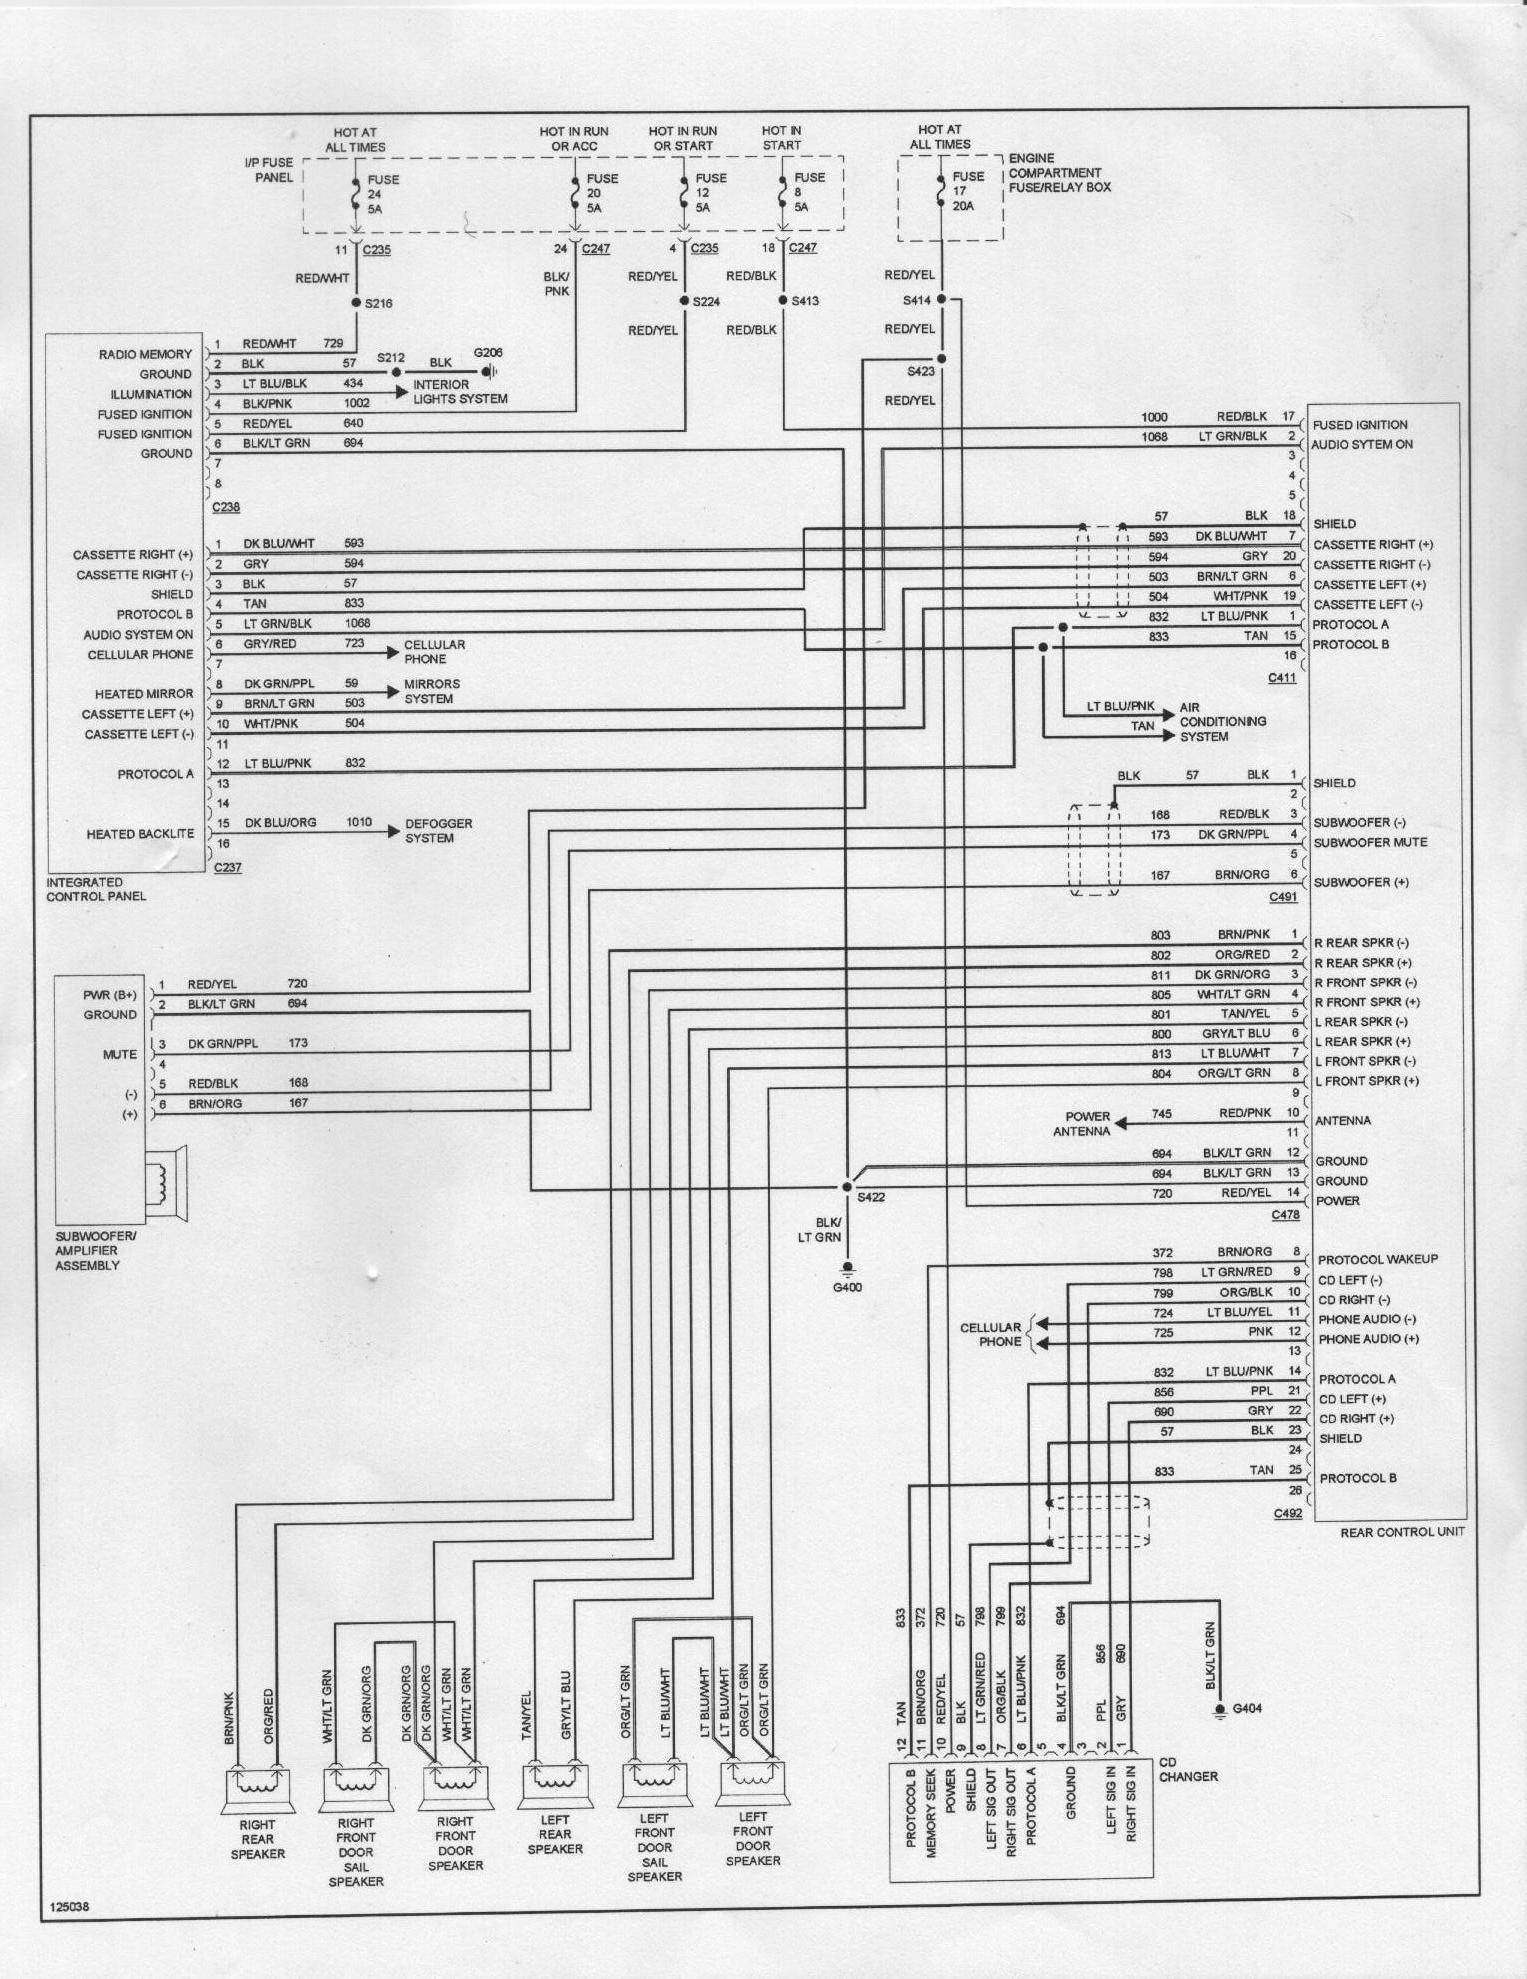 2003 ford taurus wiring diagram pdf 2003 image 2004 ford taurus wiring diagram 2004 auto wiring diagram schematic on 2003 ford taurus wiring diagram